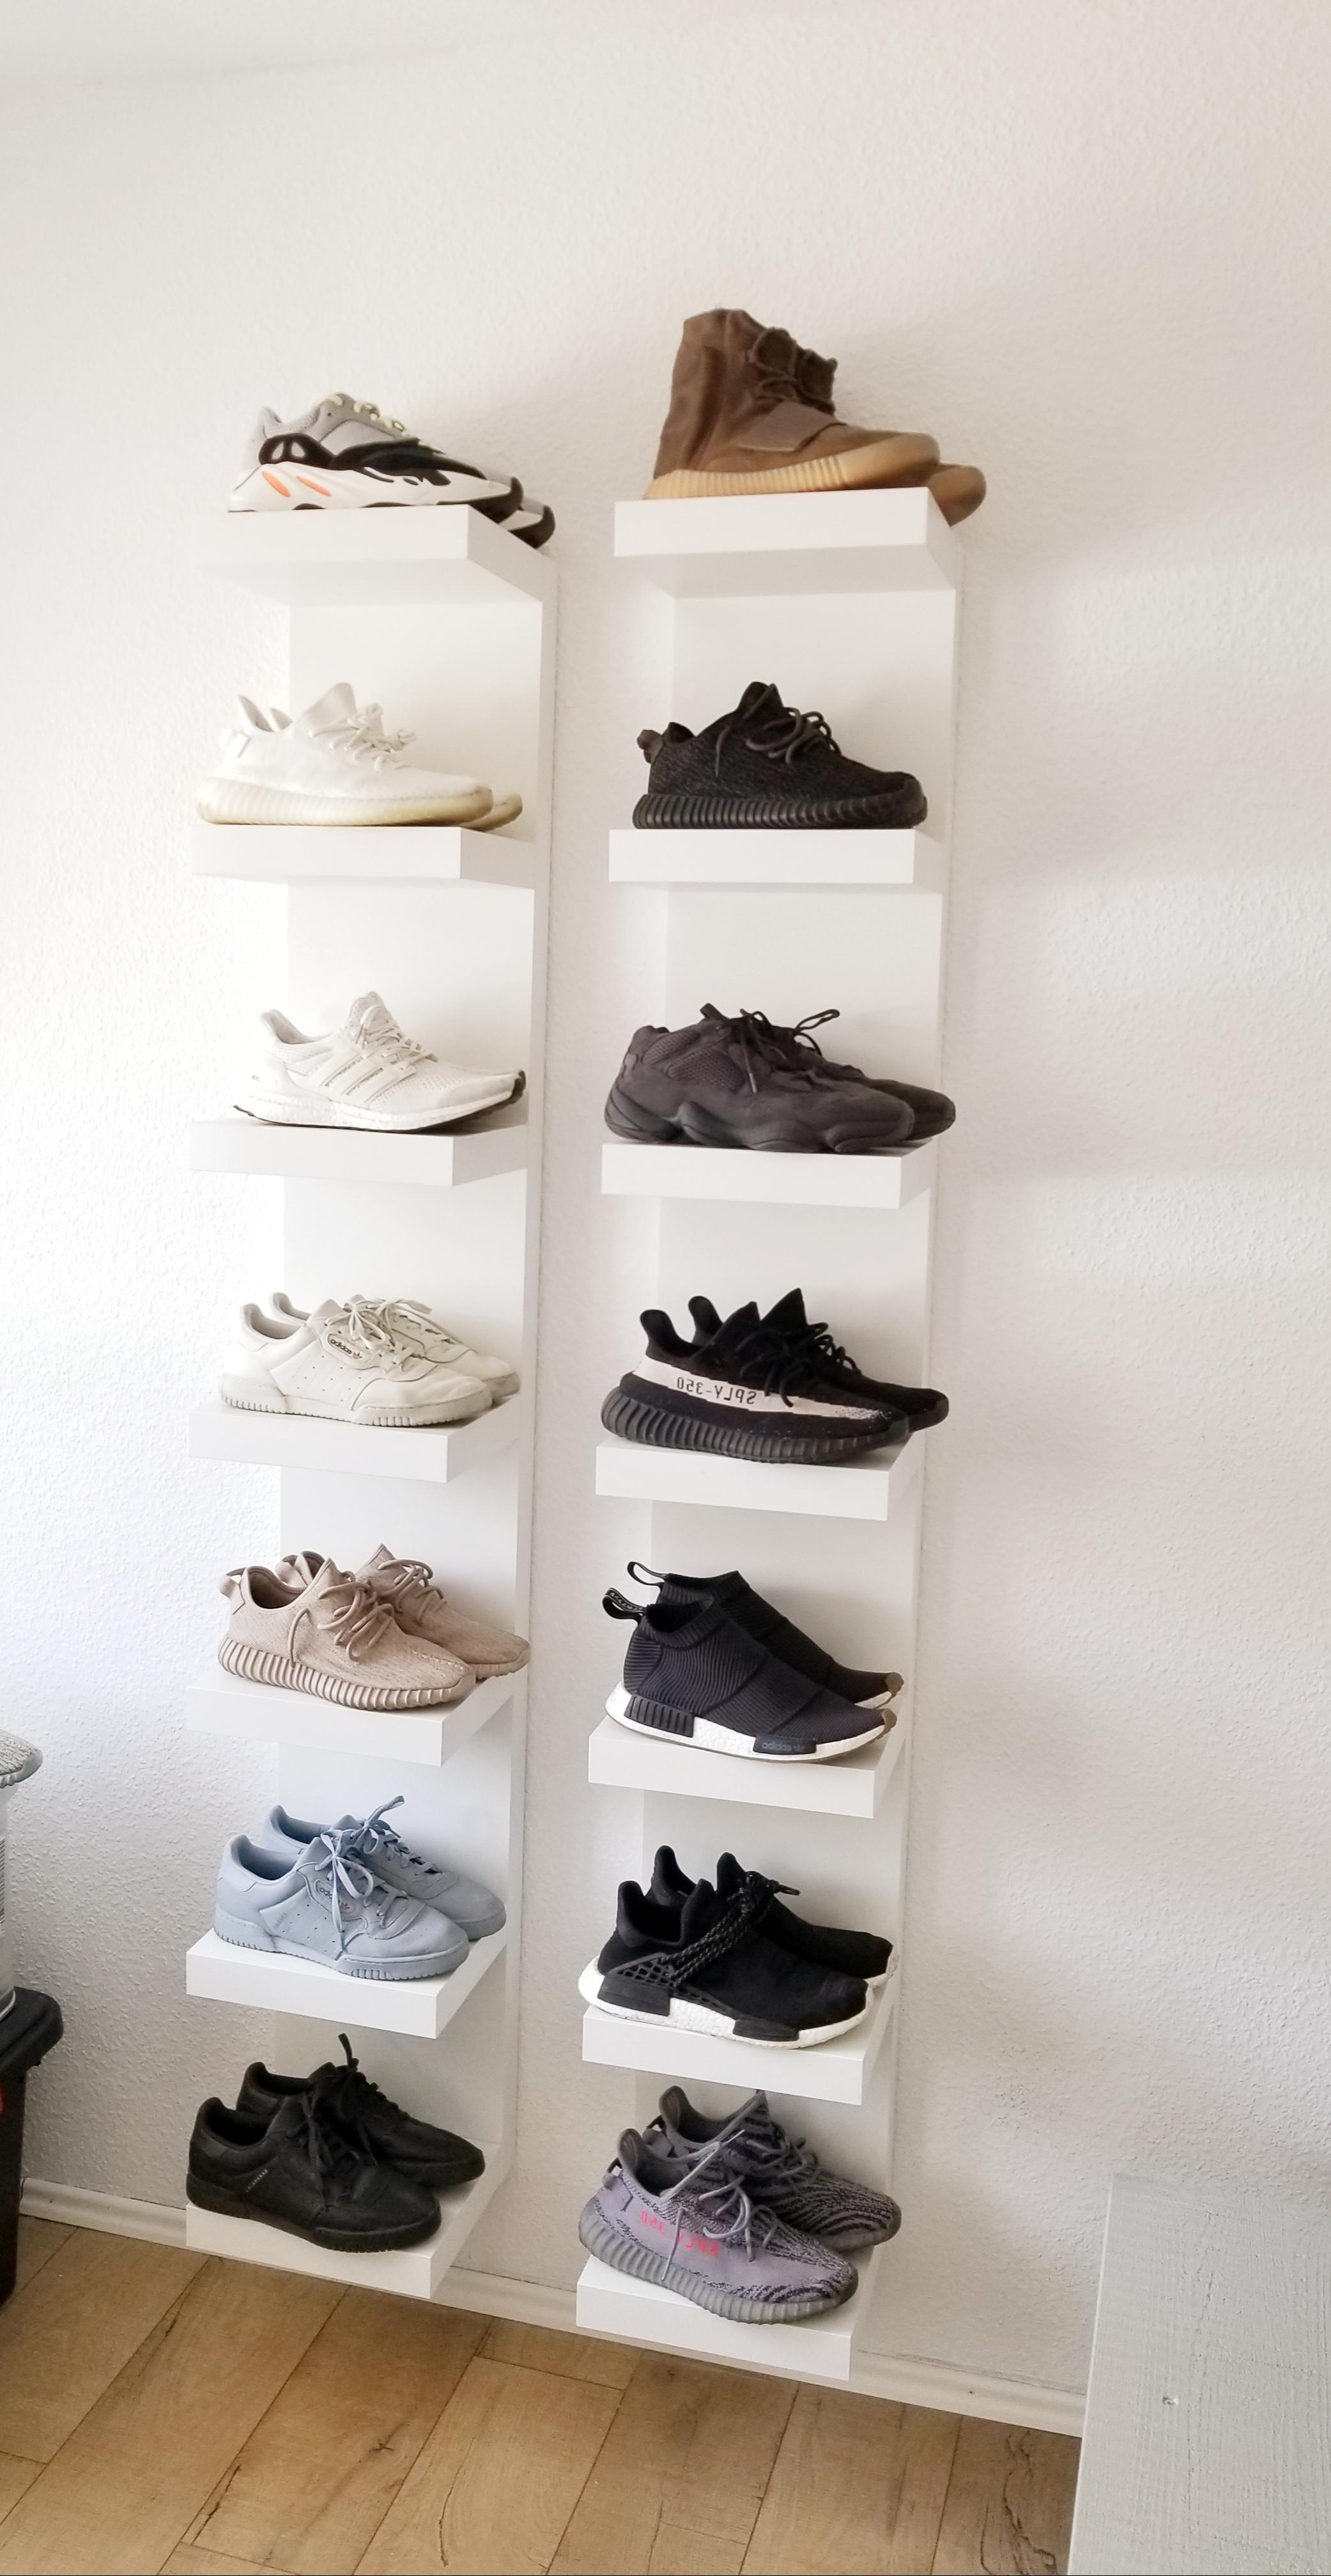 Finally Got Some Lack Shelves! : Sneakers